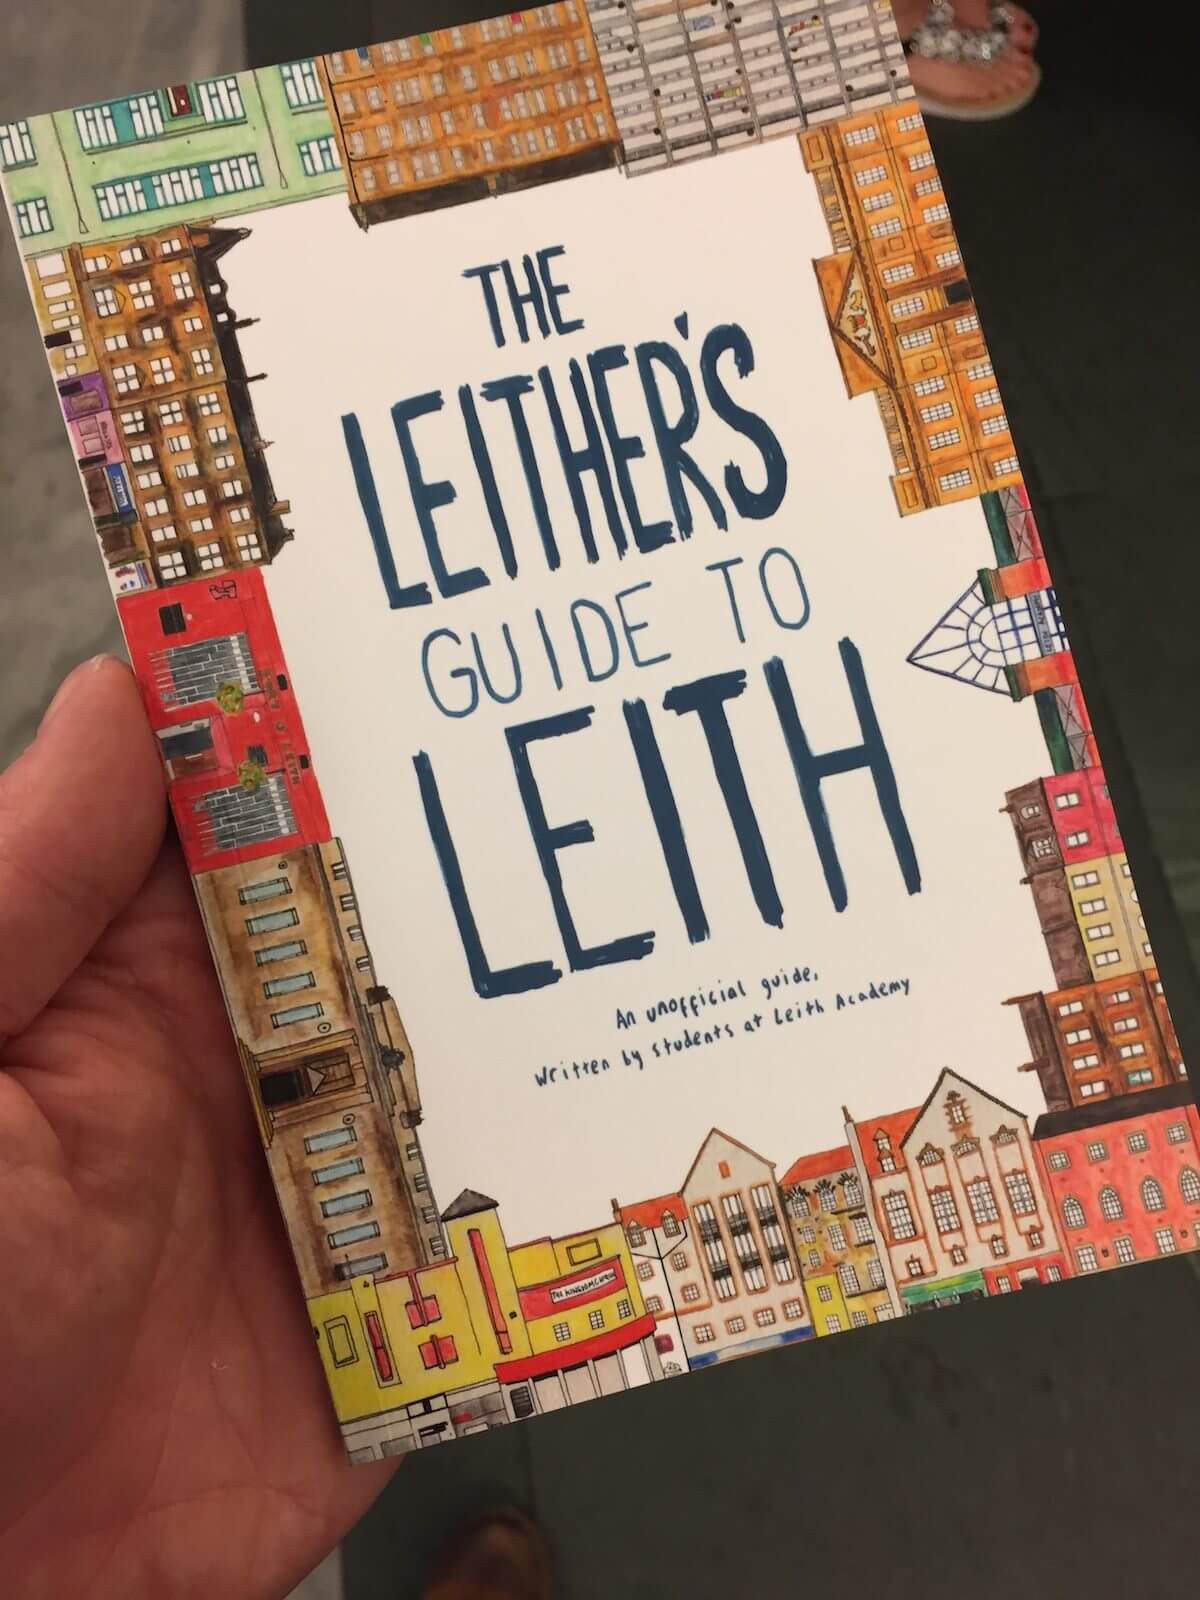 Leither's Guide to Leith Launch Party